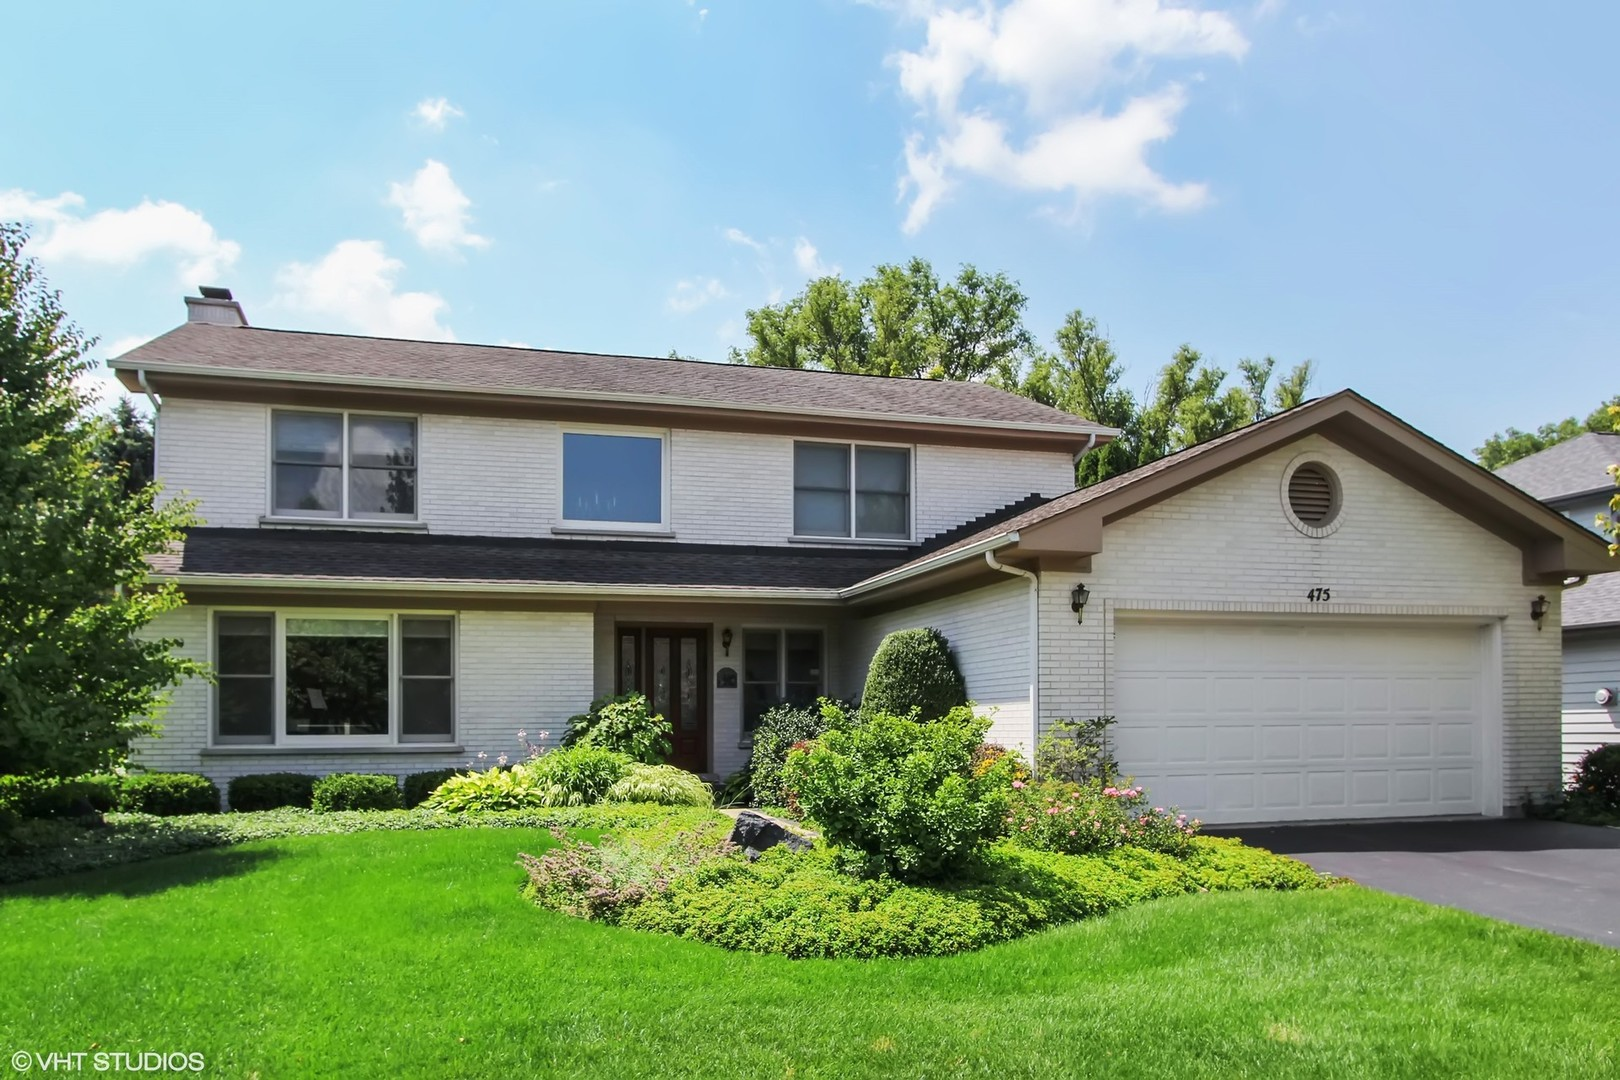 475 NEWTOWN DRIVE, BUFFALO GROVE, IL 60089